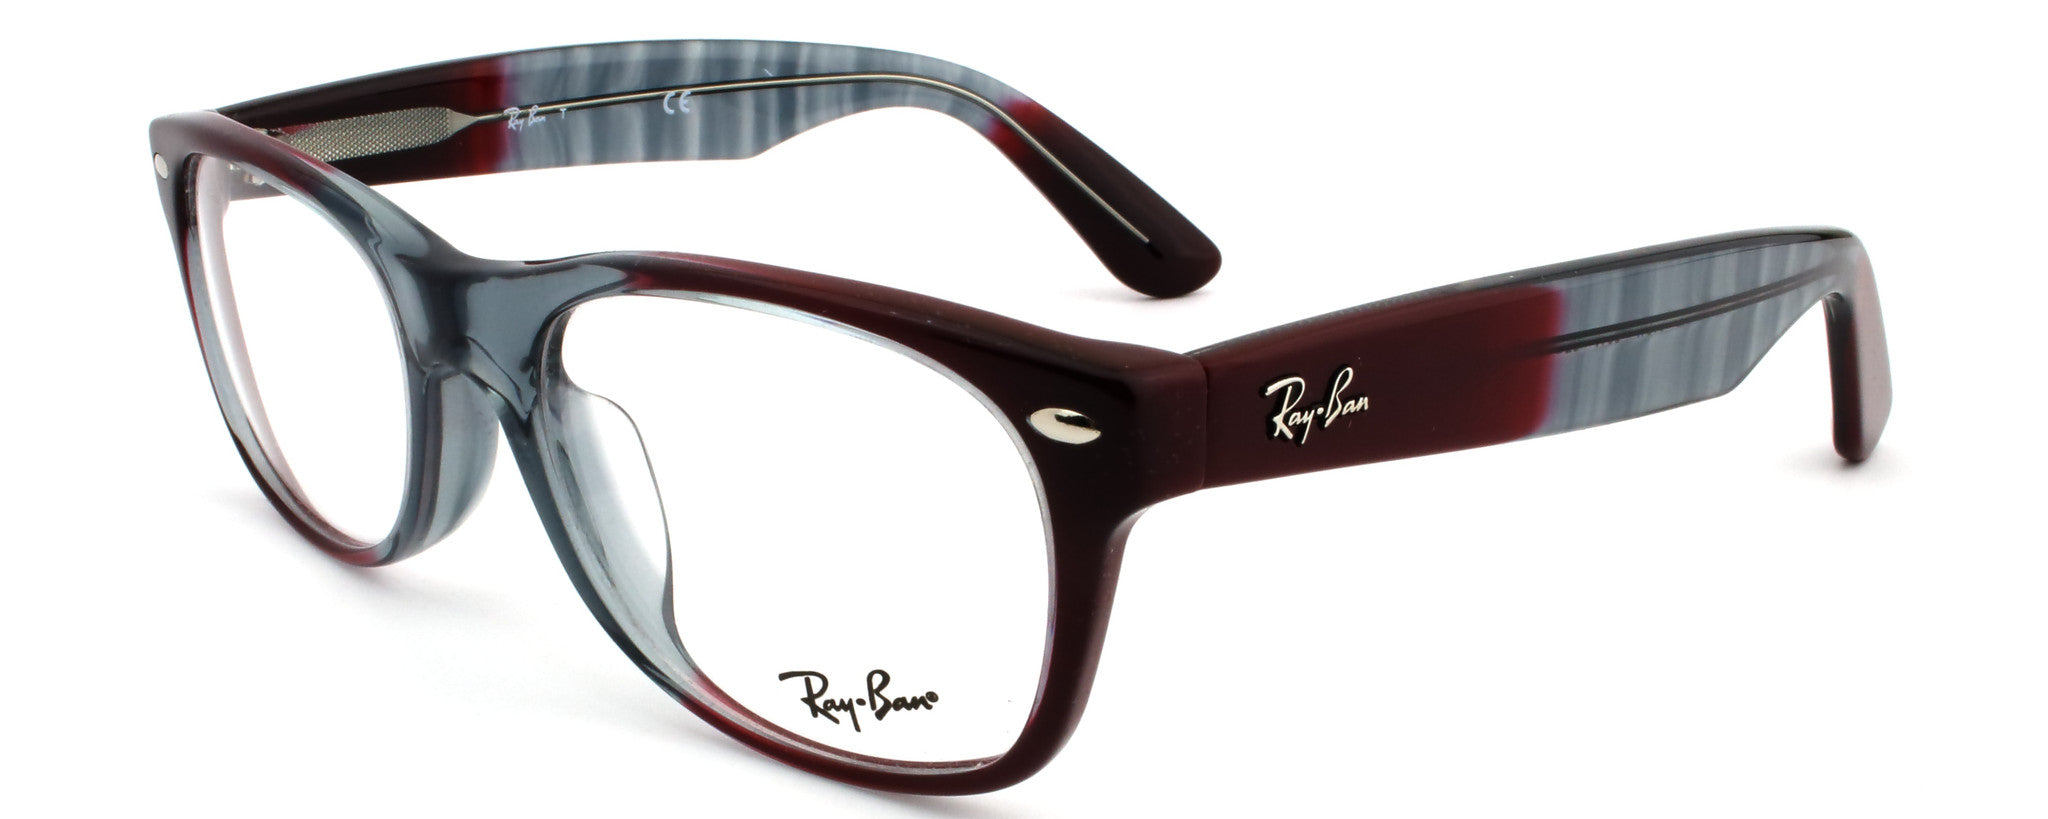 Ray Ban RX5184F New Wayfarer Eyeglasses